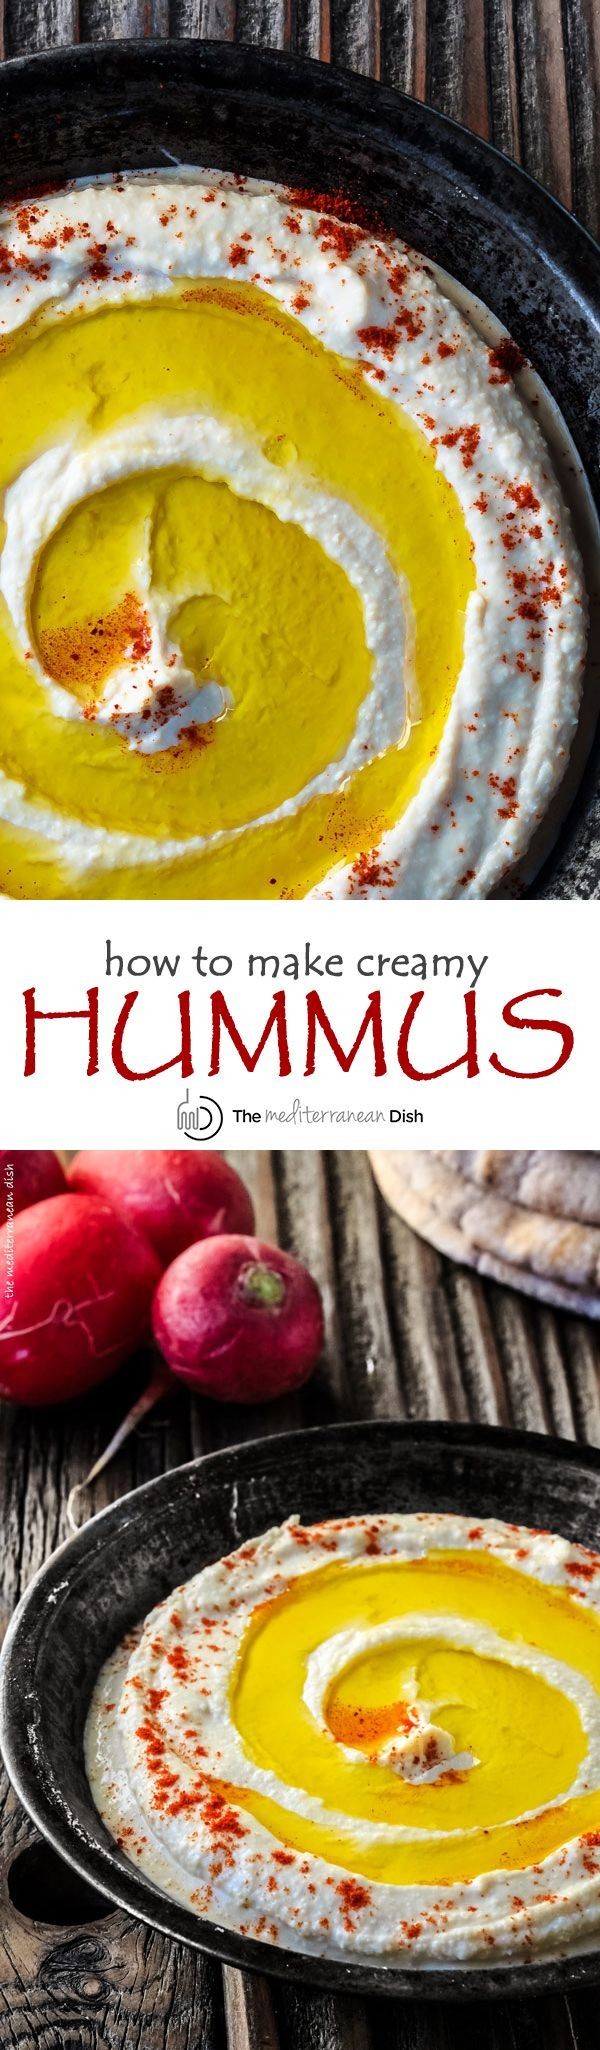 Learn how to make hummus. I give you the secret to making the creamiest traditional hummus from scratch. Step-by-step photos included.